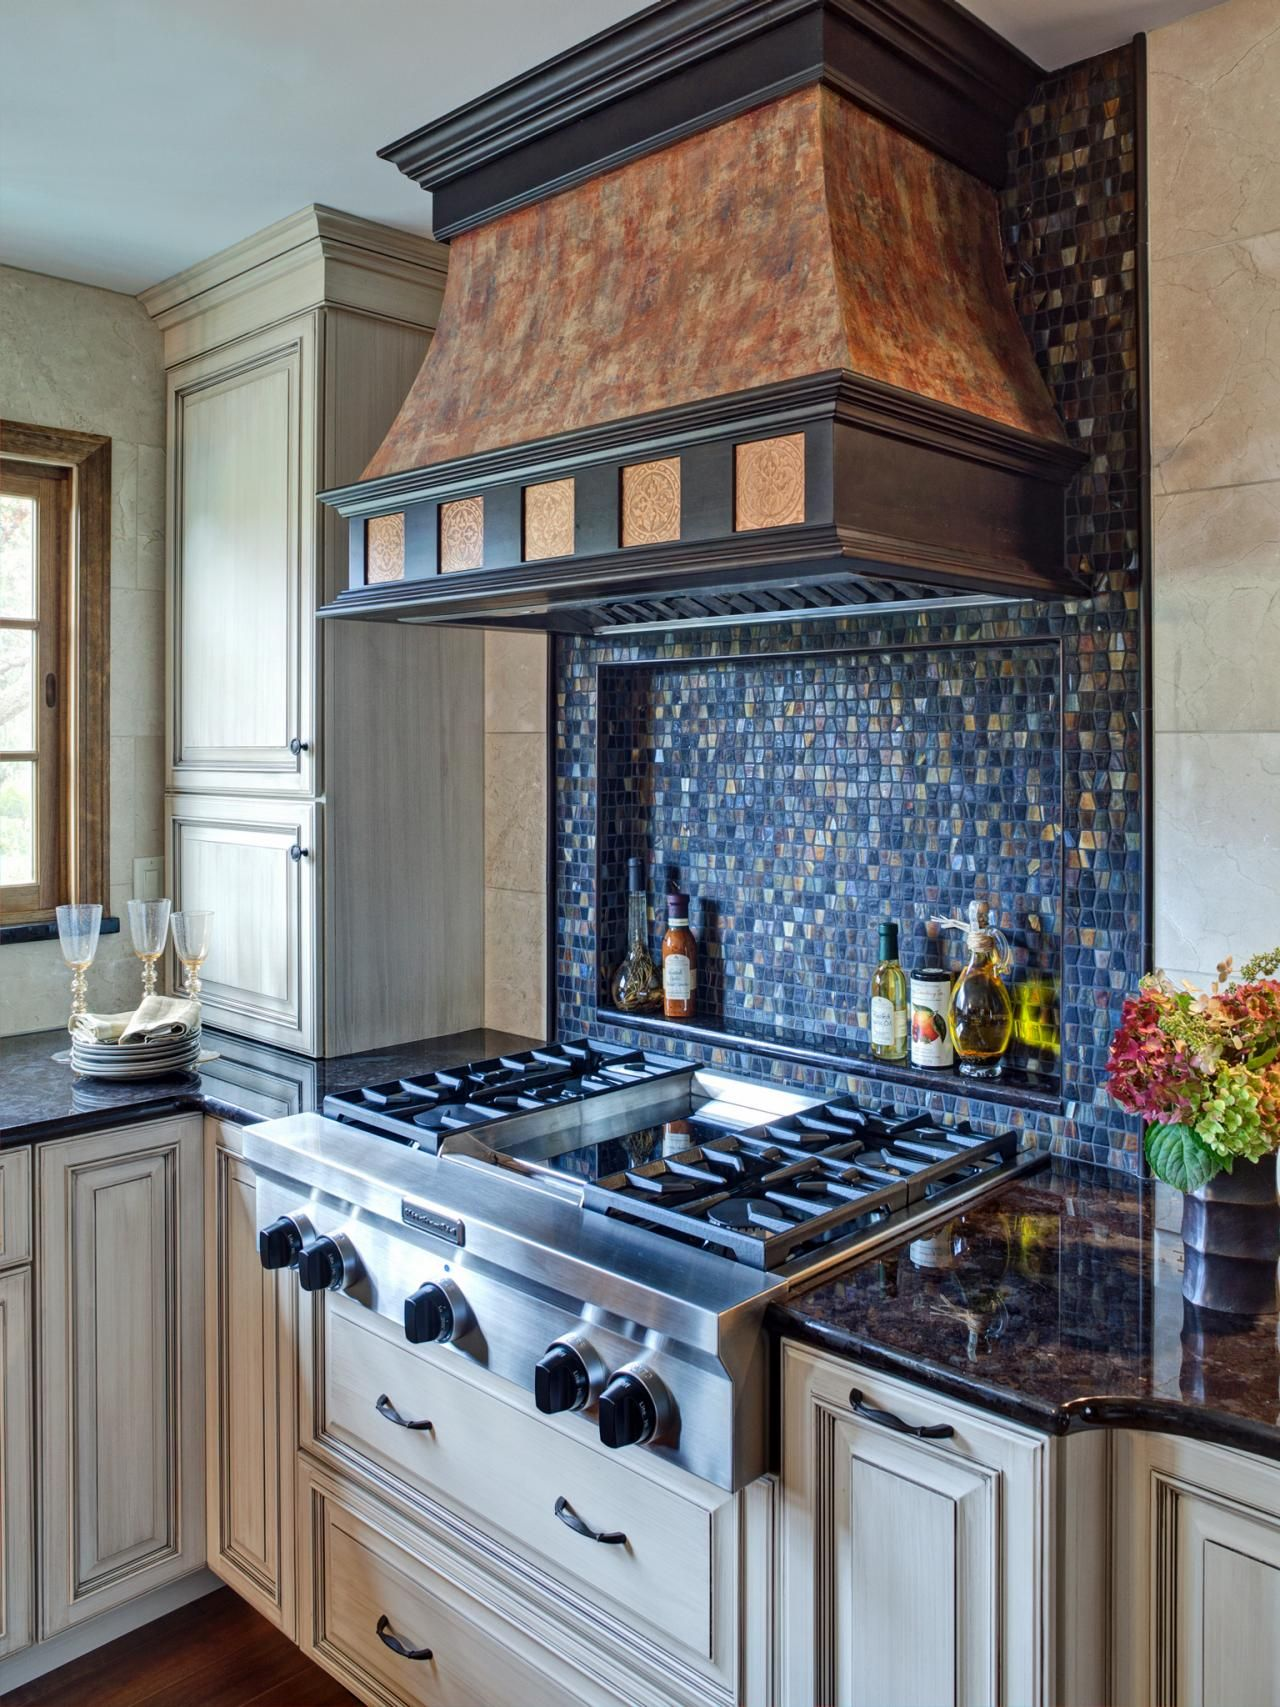 30 Trendiest Kitchen Backsplash Materials | Tile manufacturers ...